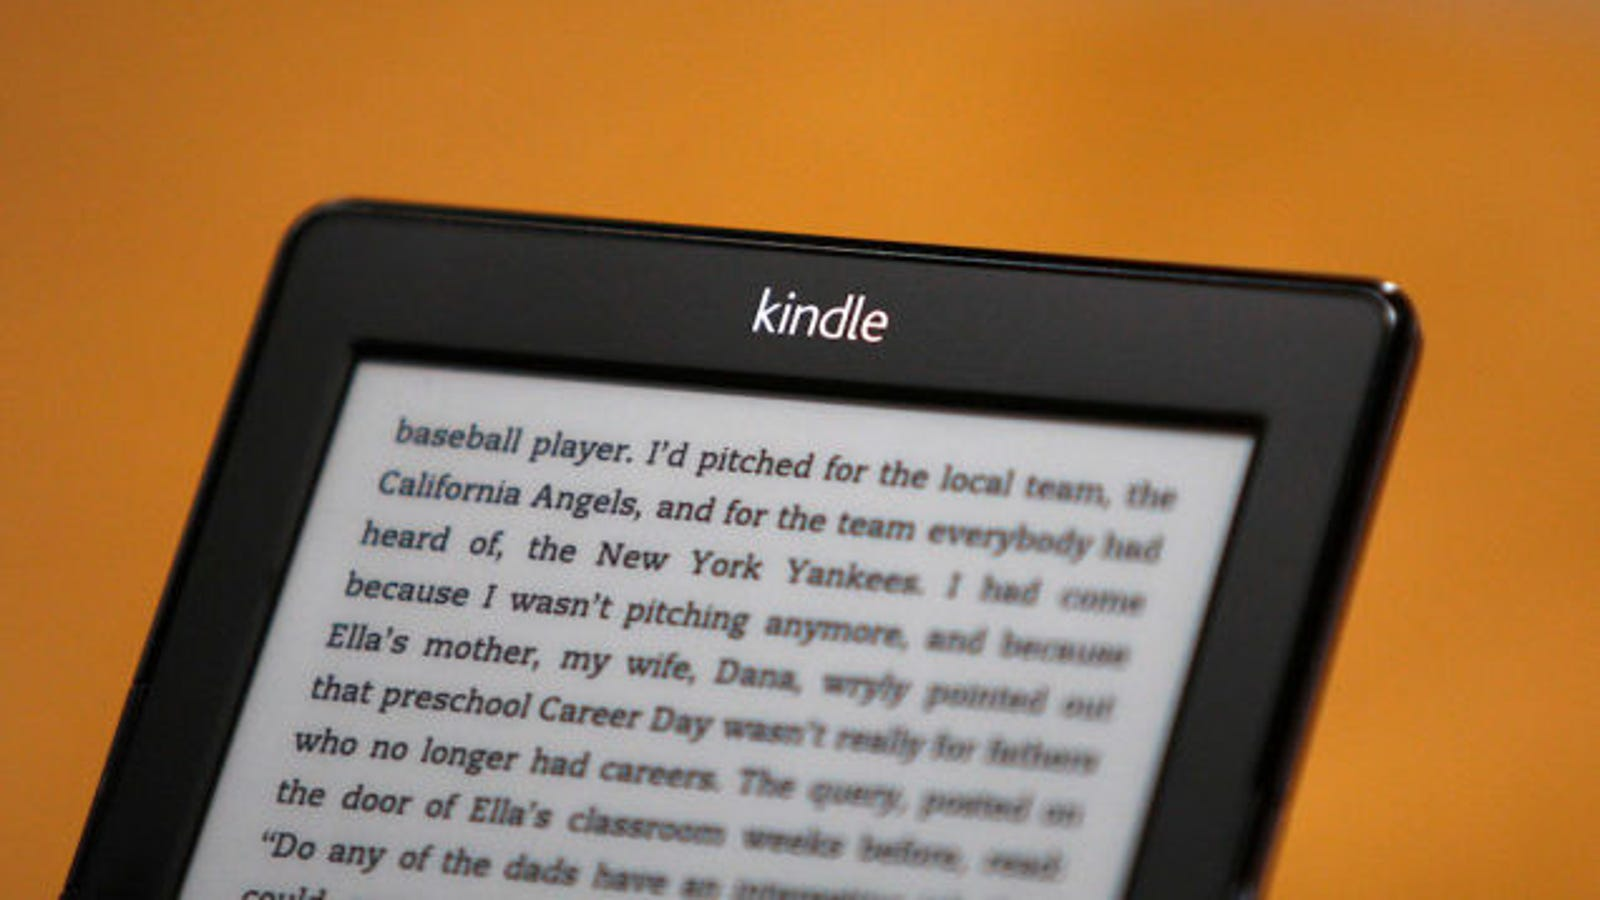 Your Amazon Account Can Be Hacked Via a Malicious Kindle Ebook